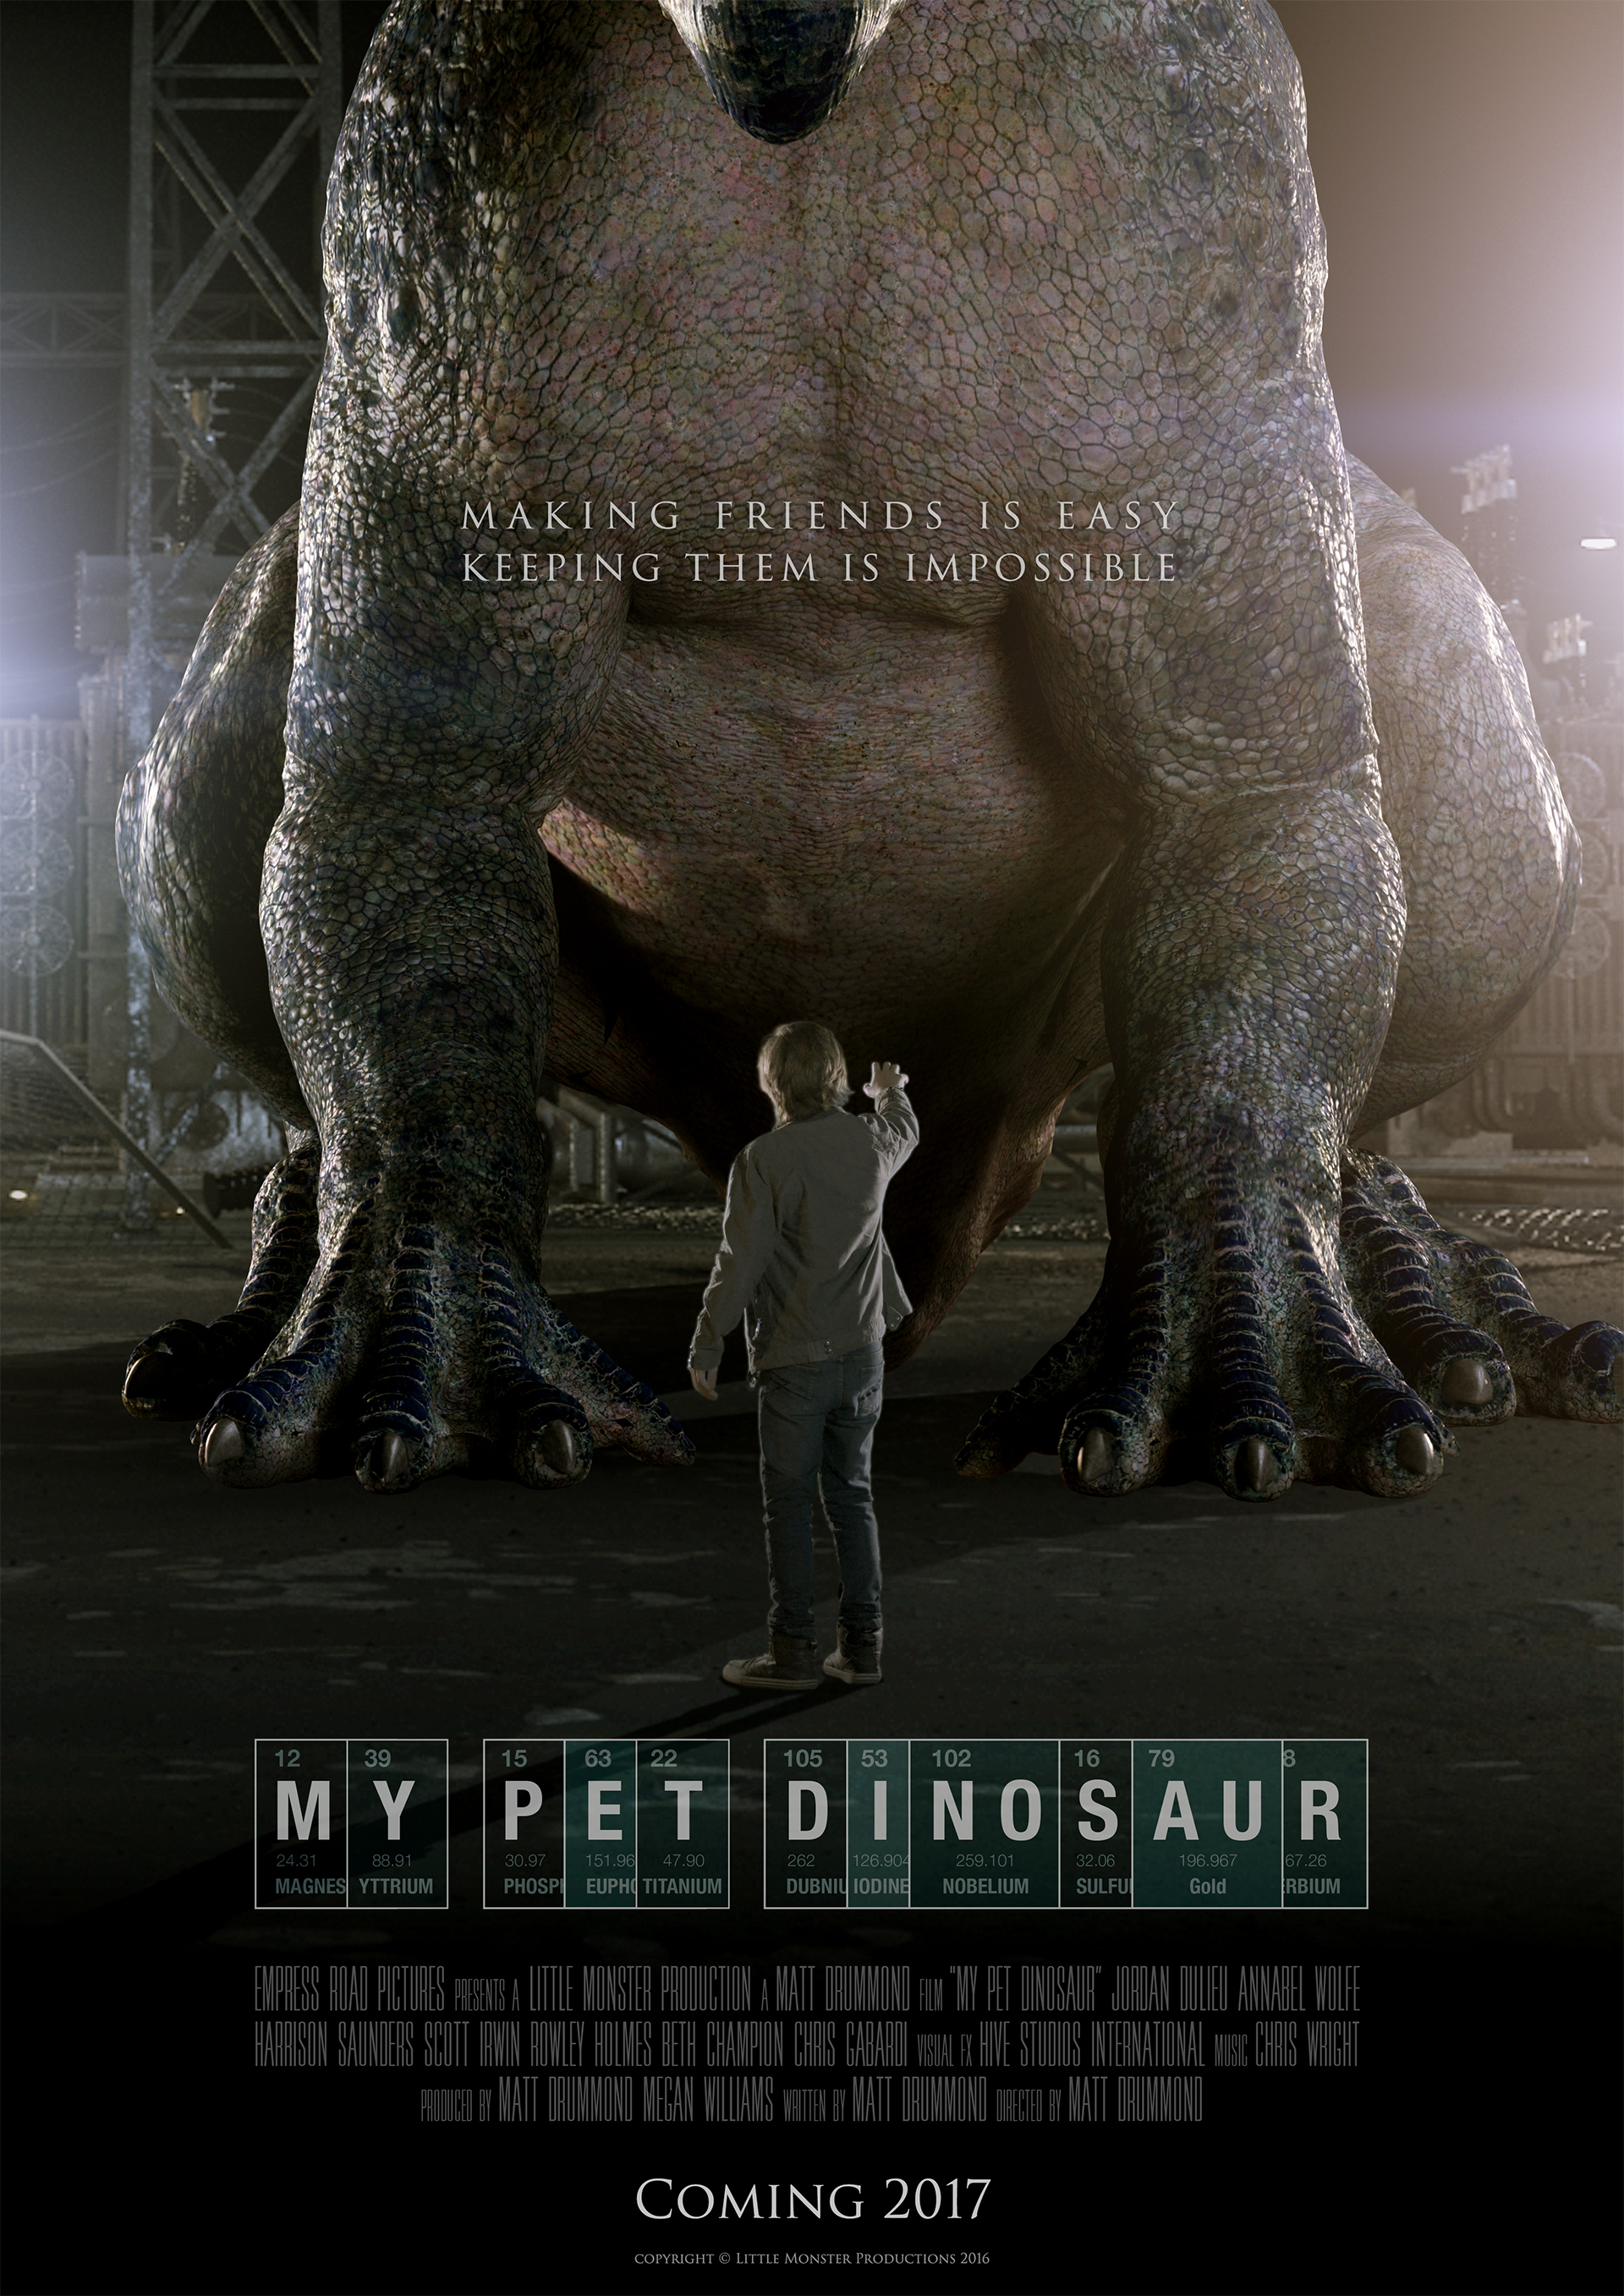 MY PET DINOSAUR (DVD)